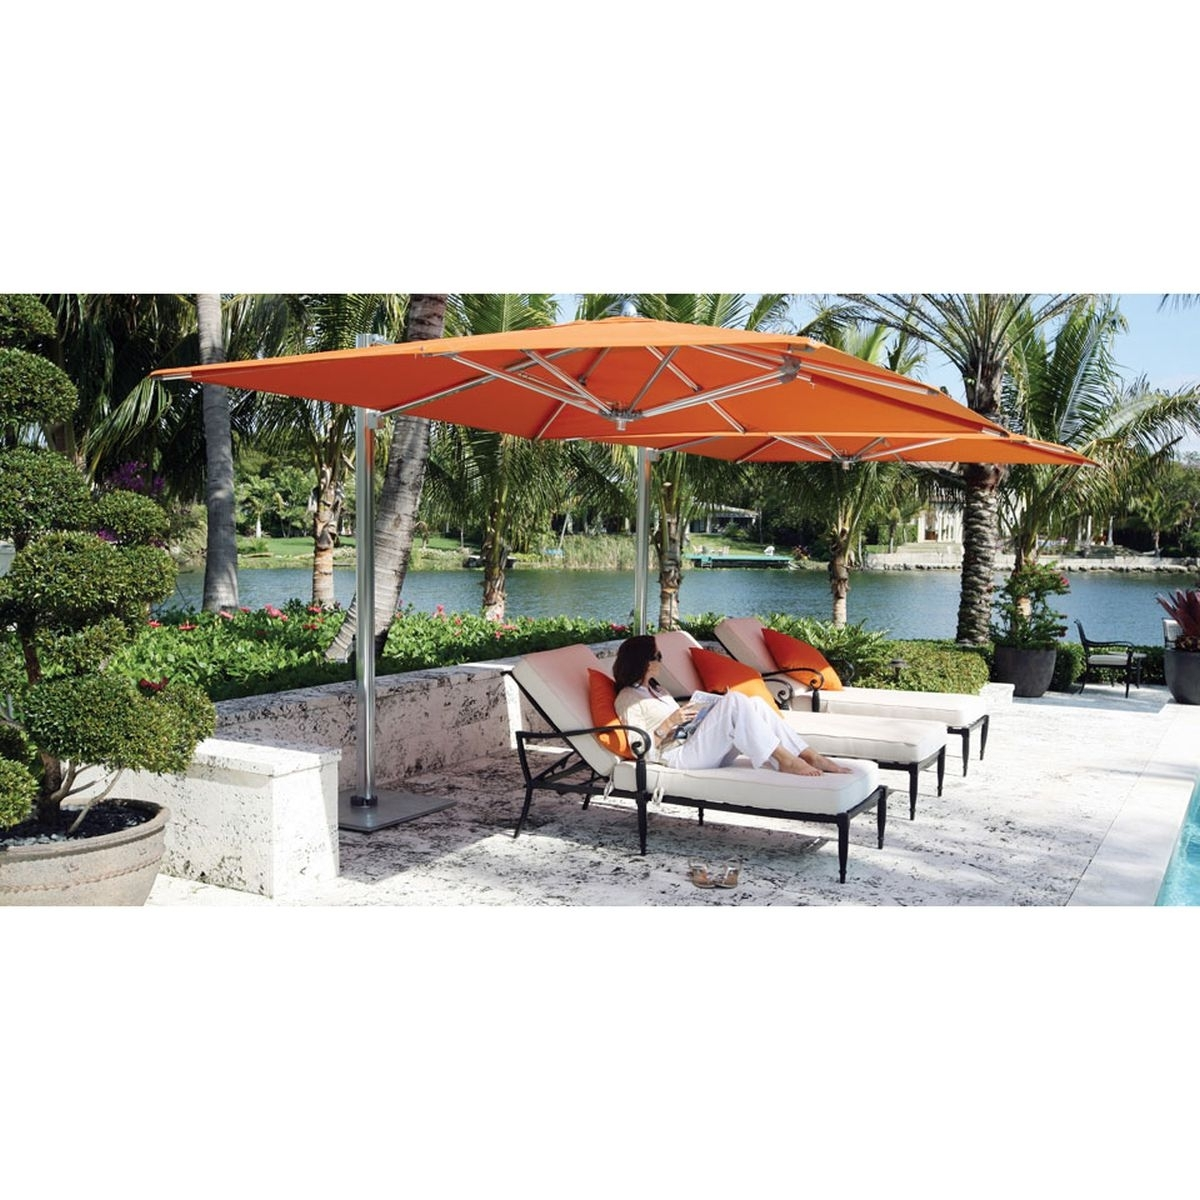 Ocean Master Max Single Cantilever 12 Ft. Square Umbrella, Cl (View 20 of 20)